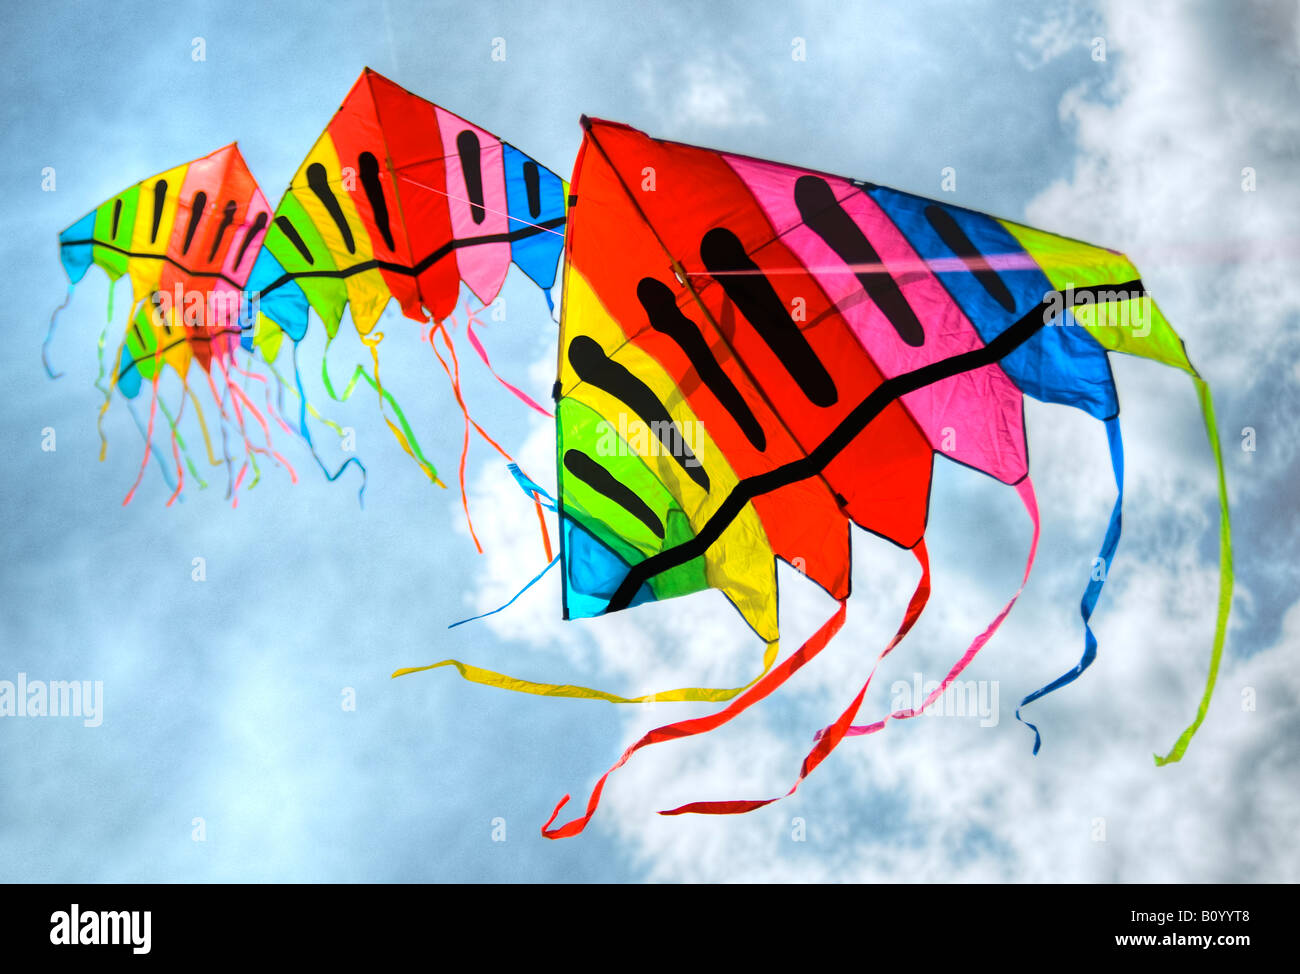 Static line kites flying against a blue and cloudy sky - Stock Image